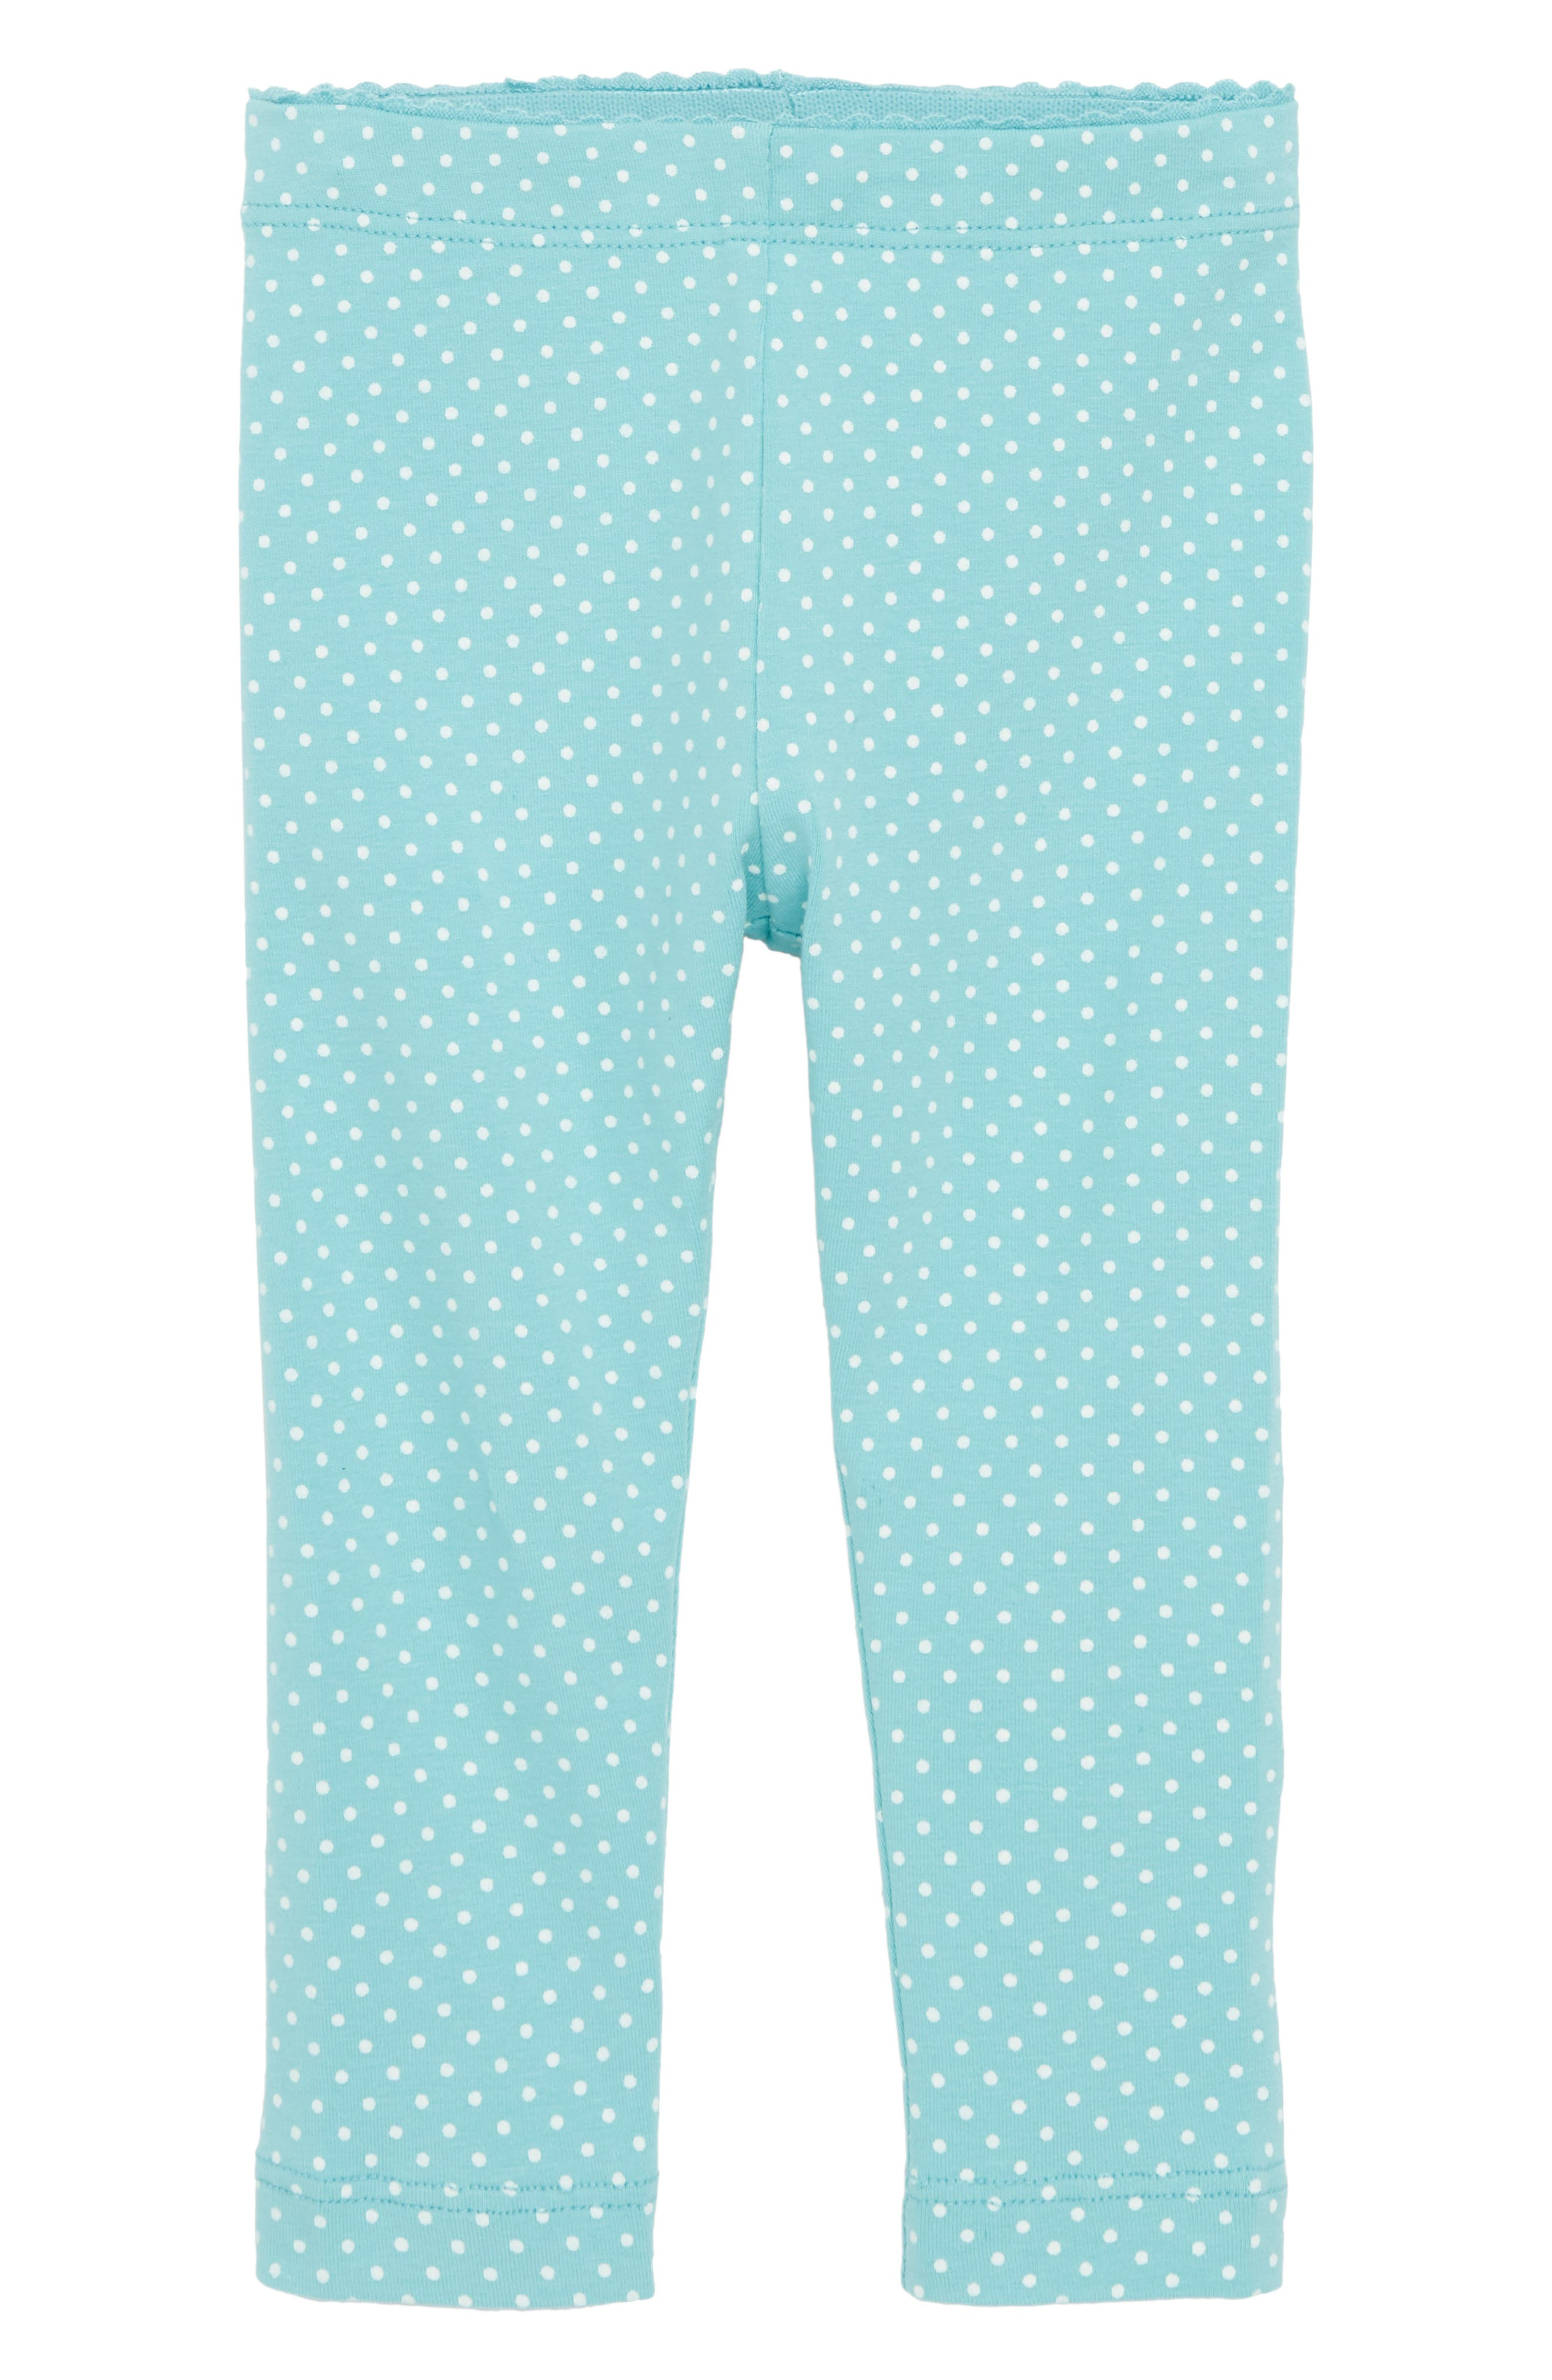 Pin Dot Leggings,                             Main thumbnail 1, color,                             Ciel